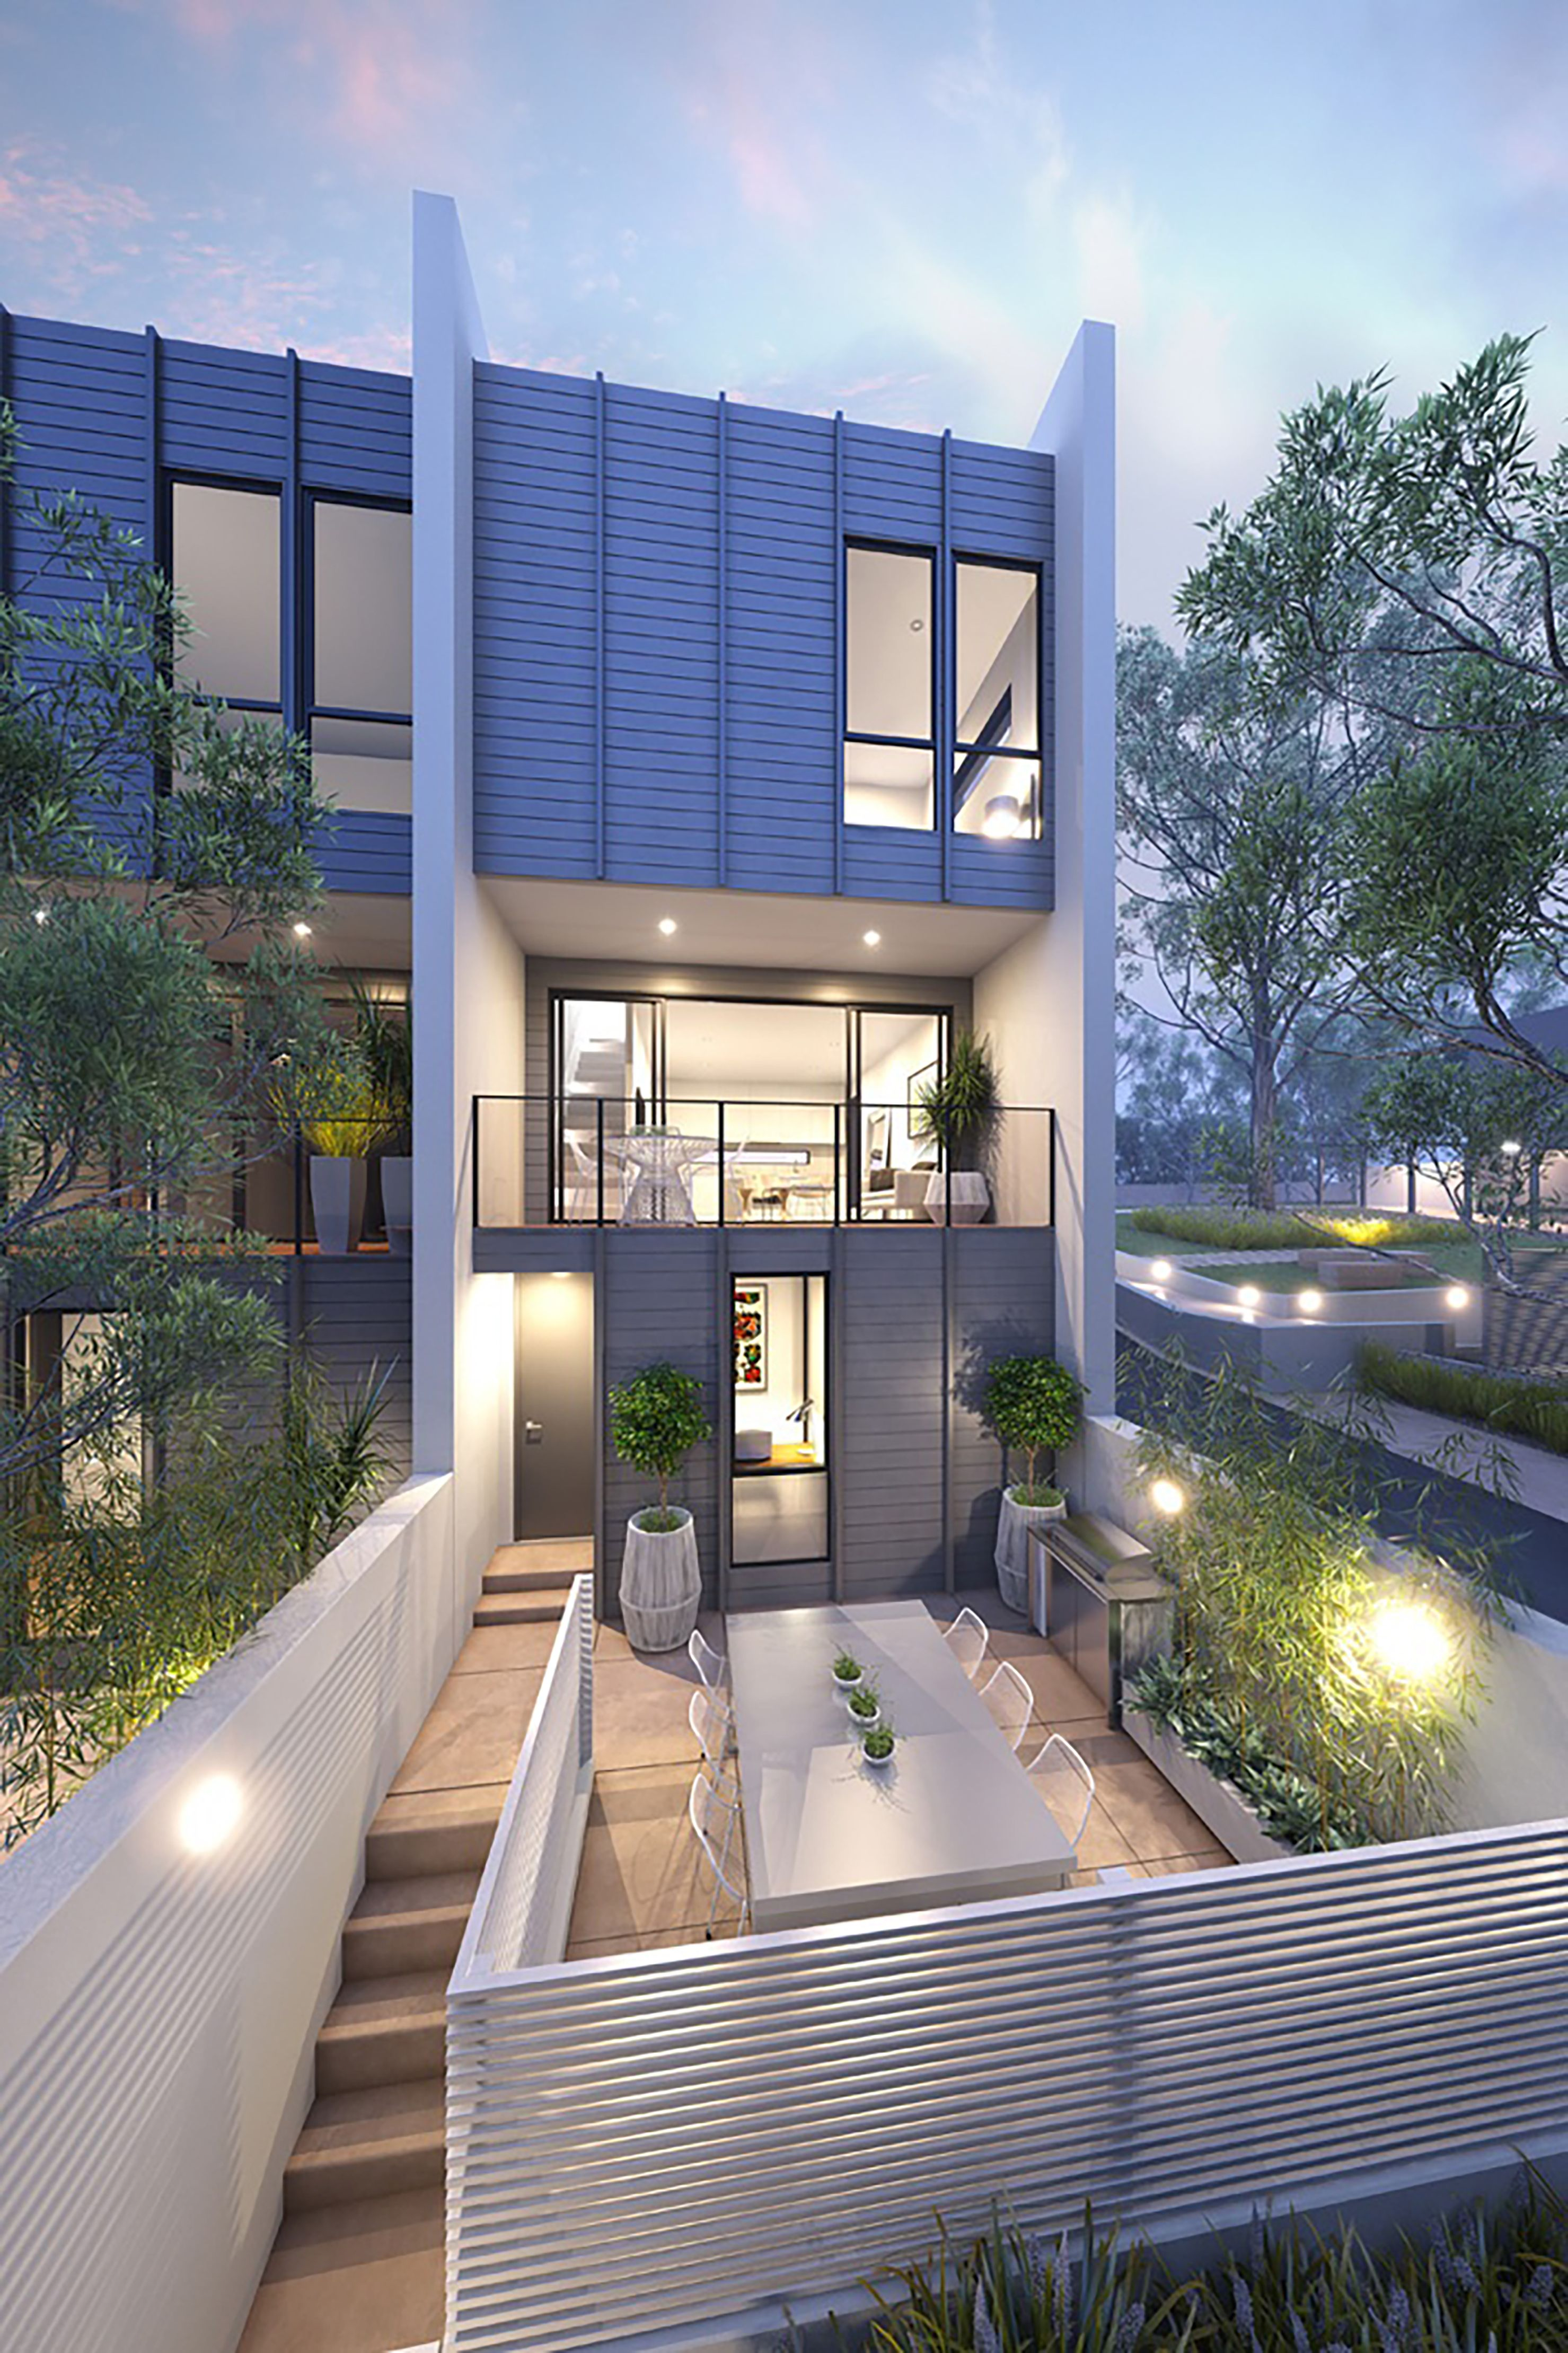 Townhouse Designs, Modern Townhouse, Small